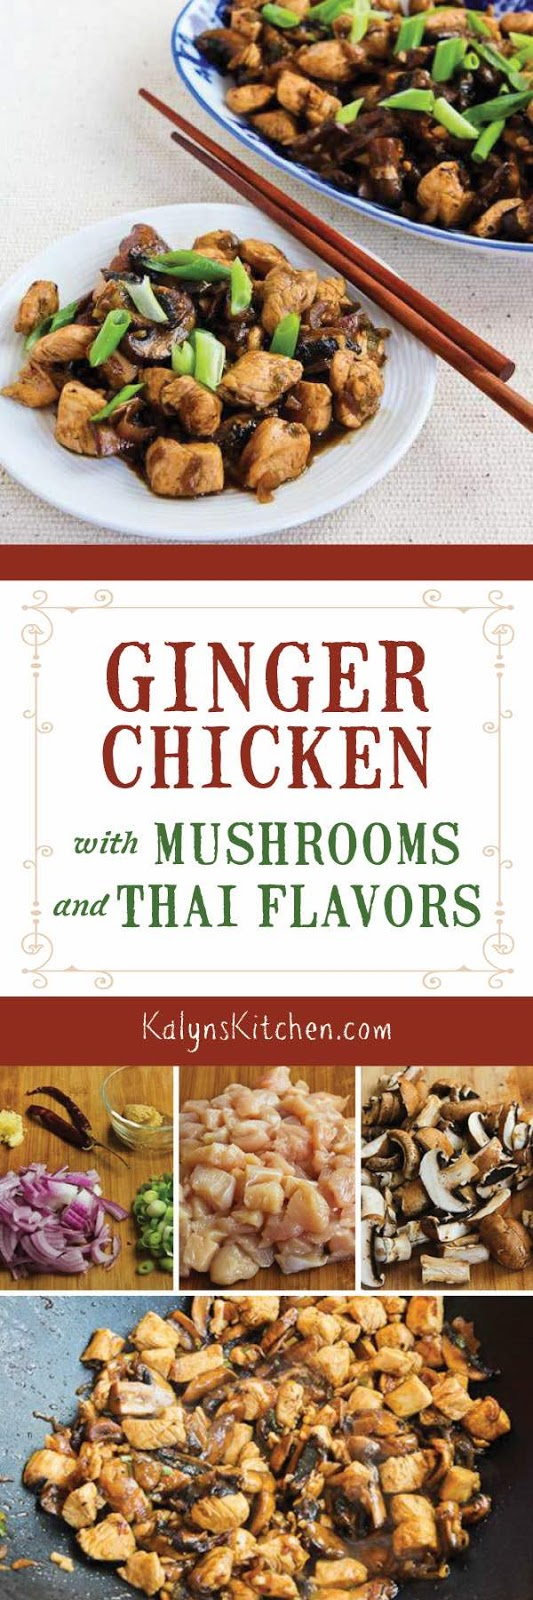 Mark bittmans ginger chicken with mushrooms and thai flavors mark bittmans ginger chicken with mushrooms and thai flavors kalyns kitchen forumfinder Image collections